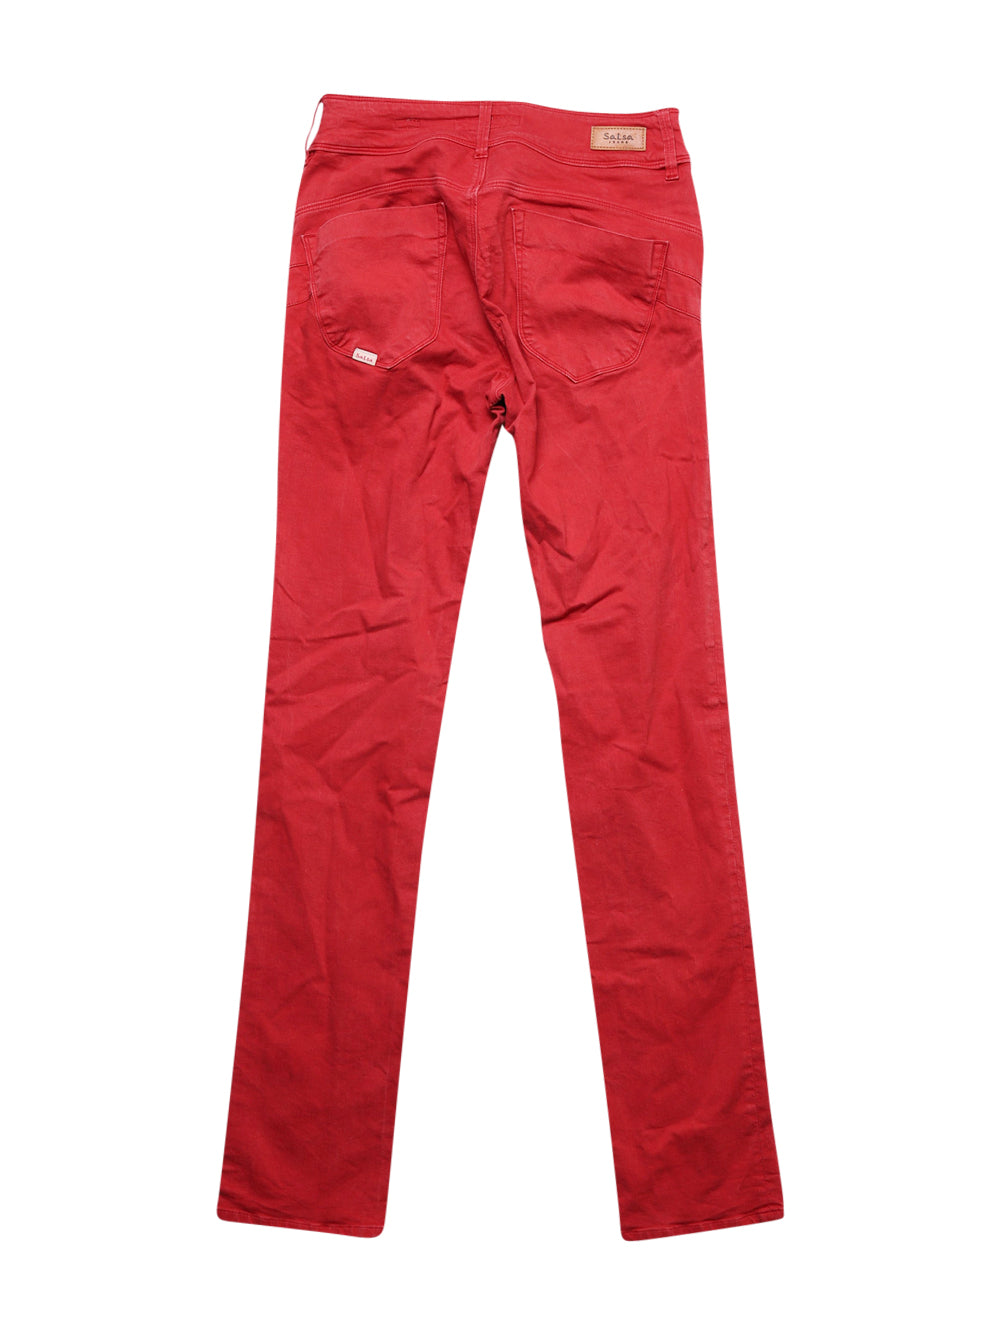 Back photo of Preloved salsalife Red Man's trousers - size 34/XS